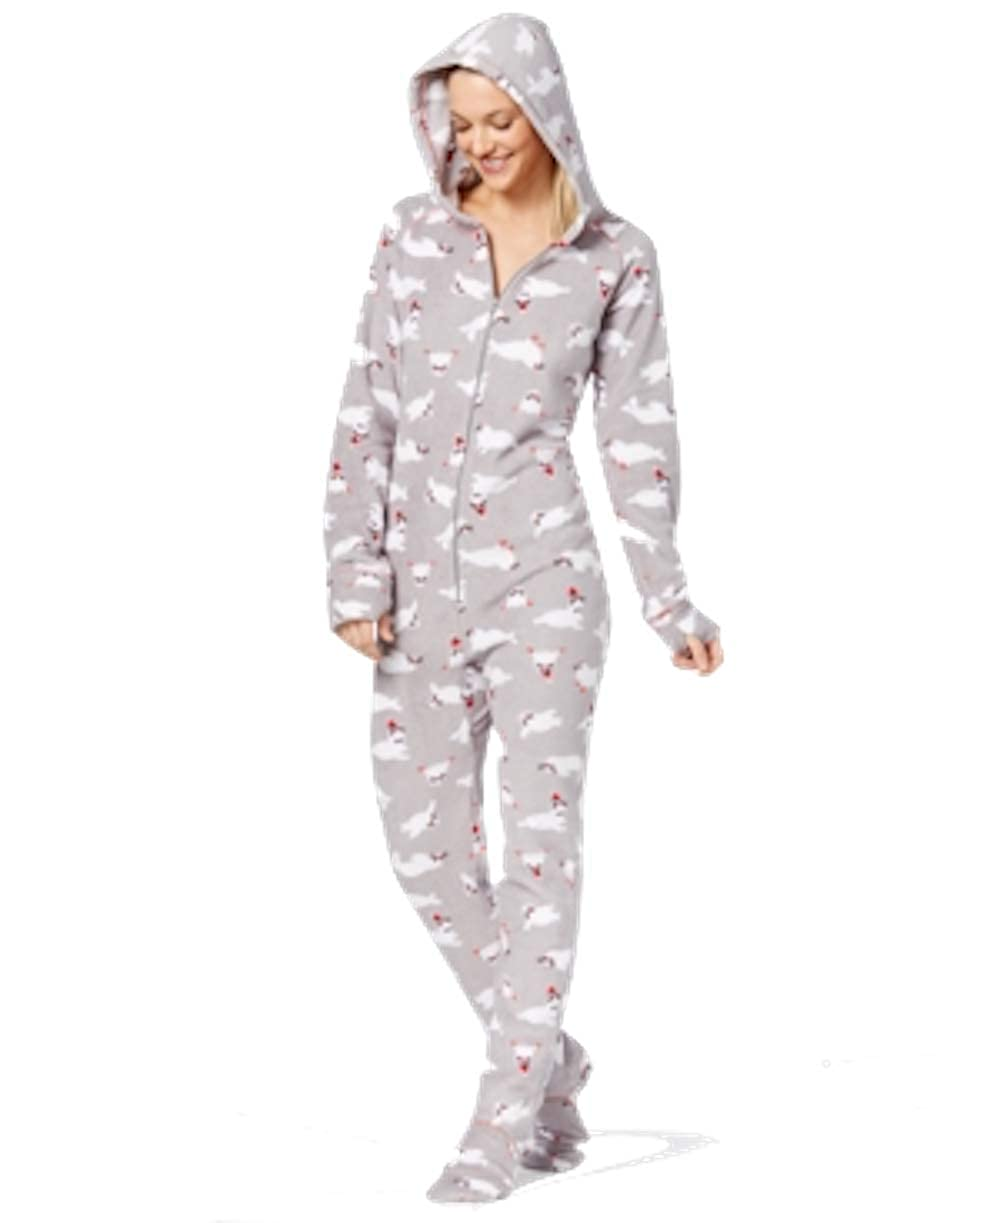 1d56c8d1f26 Amazon.com  Jenni by Jennifer Moore Hooded Footed Printed Pajama Jumpsuit  Women s  Clothing